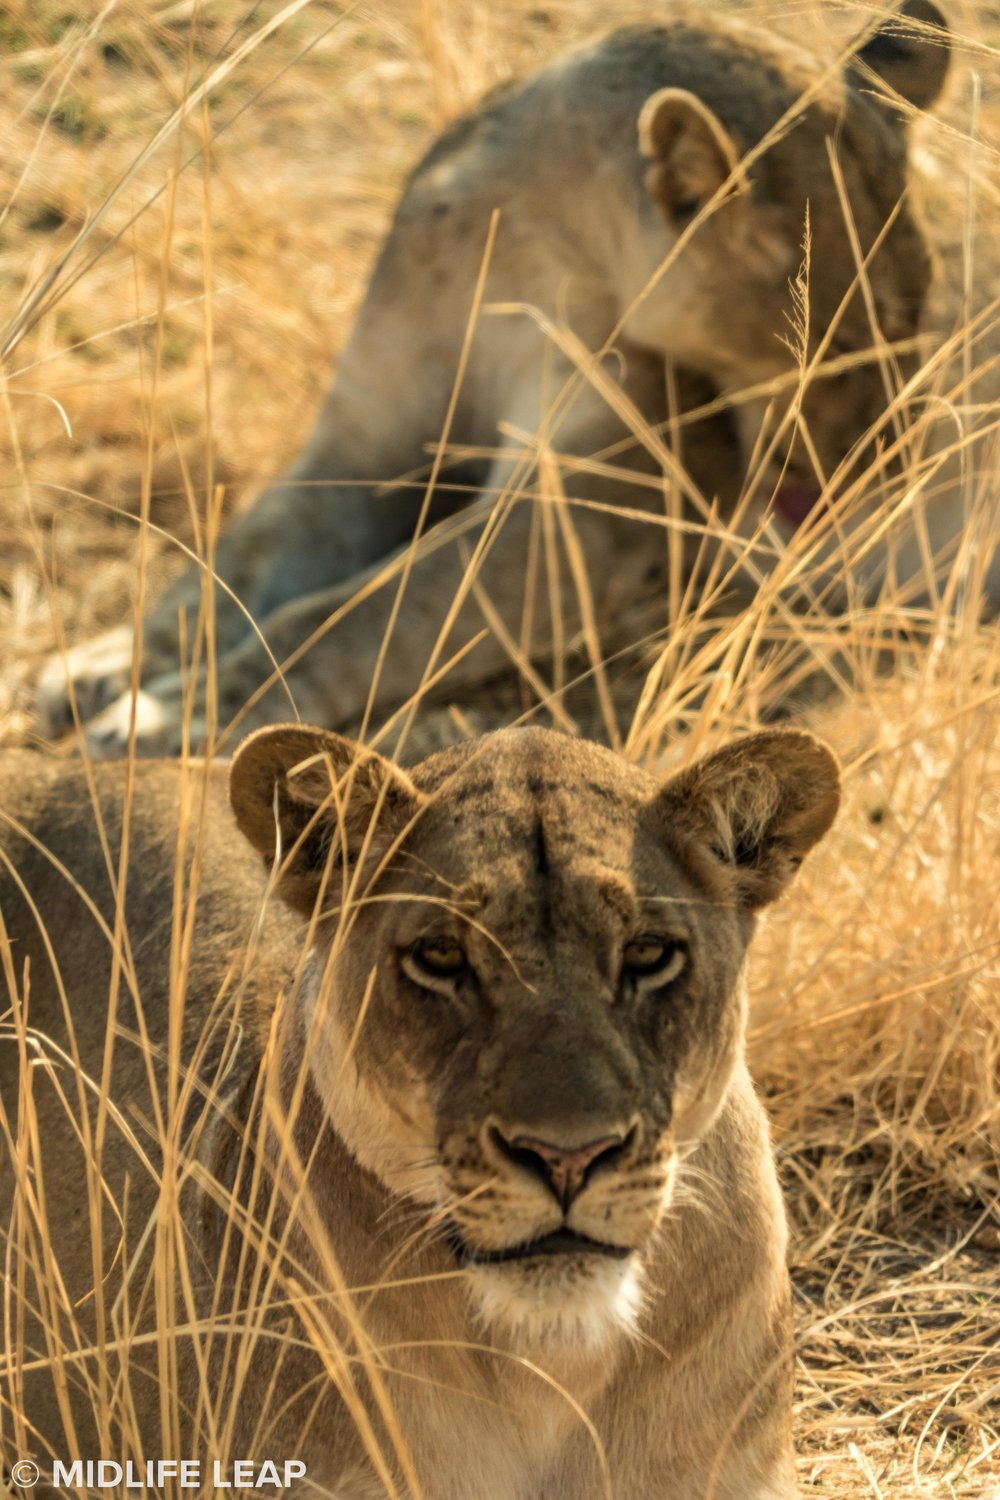 safari-in-zambia-remote-africa-safaris-midlife-leap-tafika-lion-in-south-luangwa